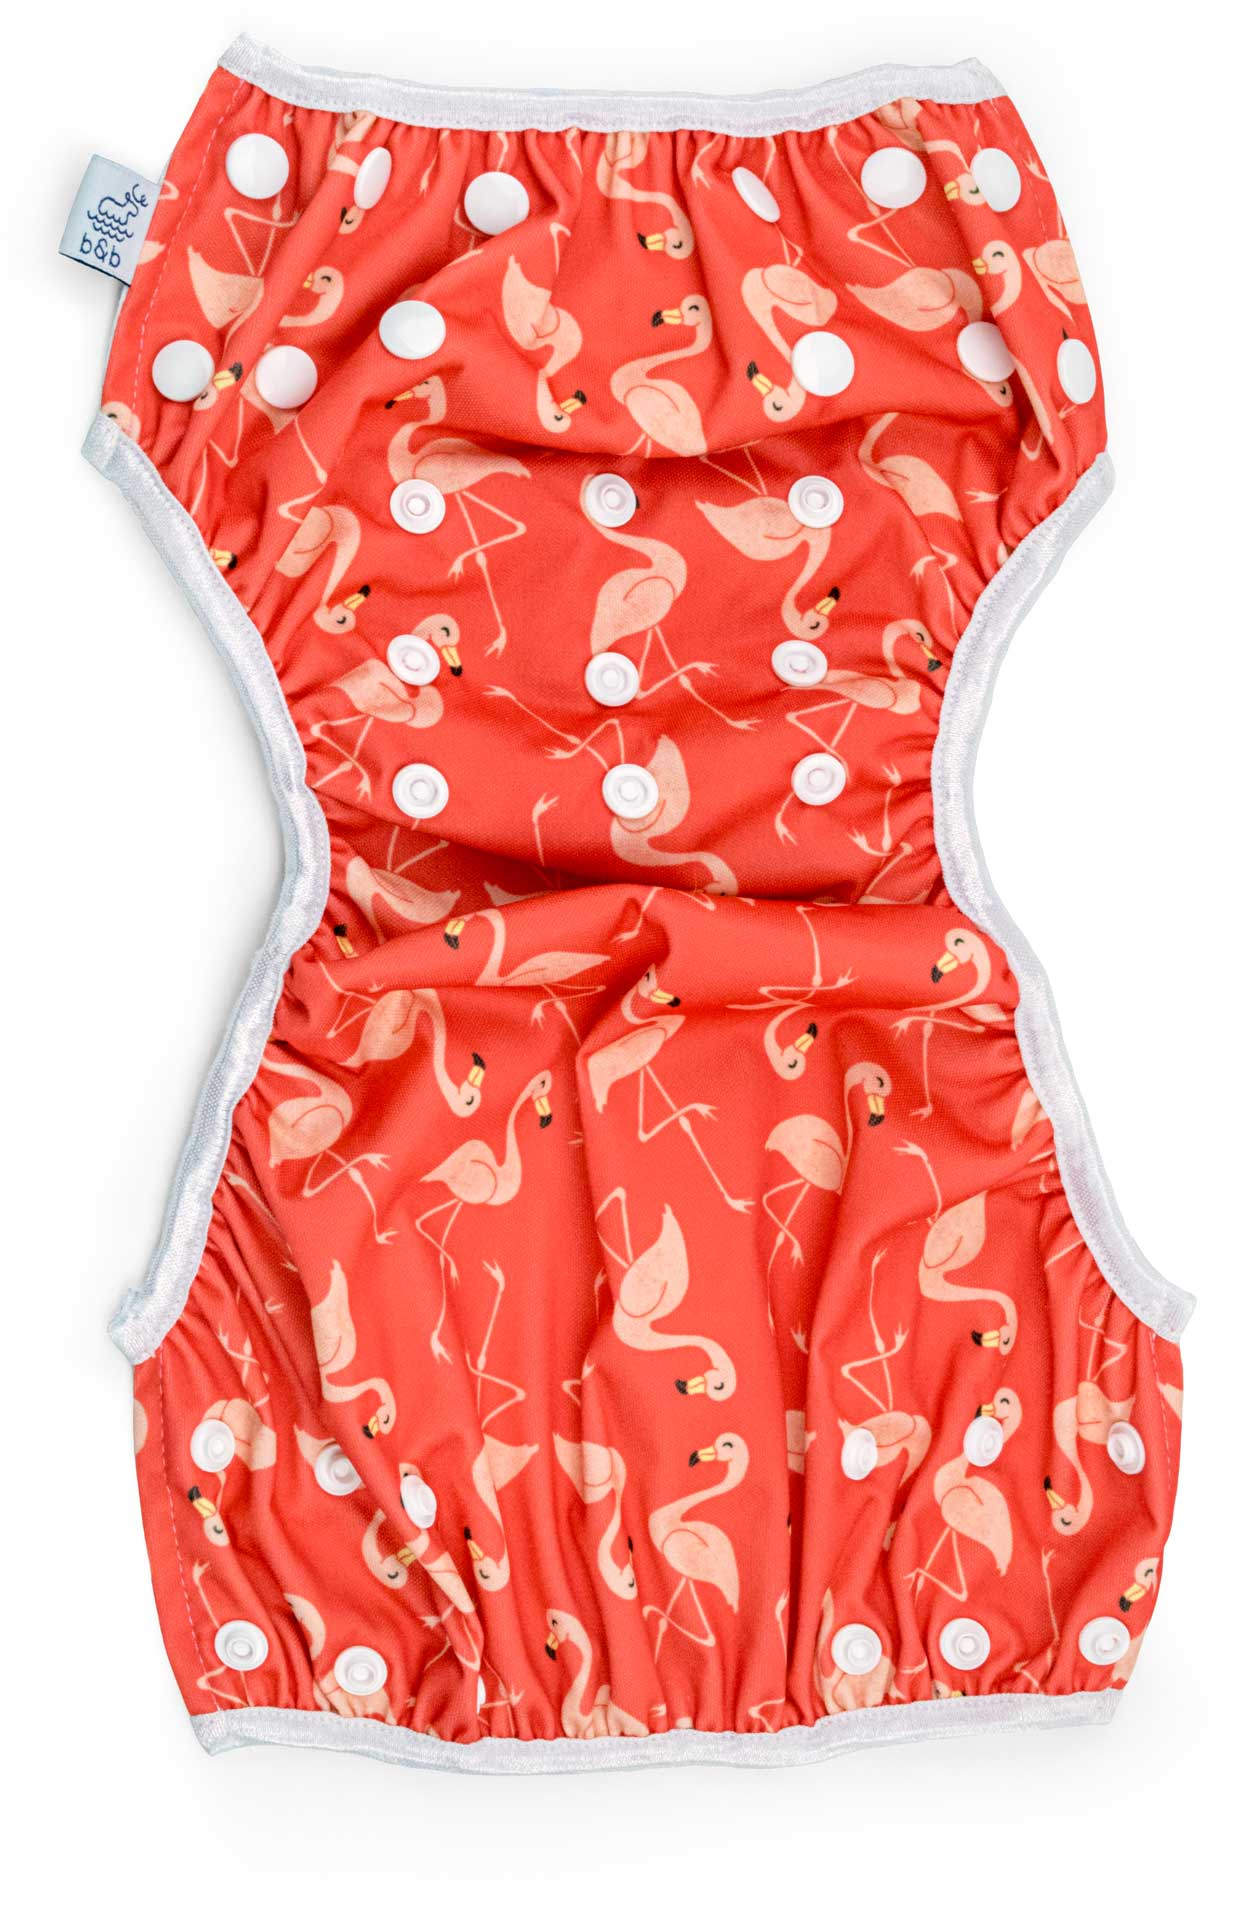 Beau and Belle Littles Swim Diaper, Regular Size, dark pink with light pink flamingos, unbuttoned and laid out flat